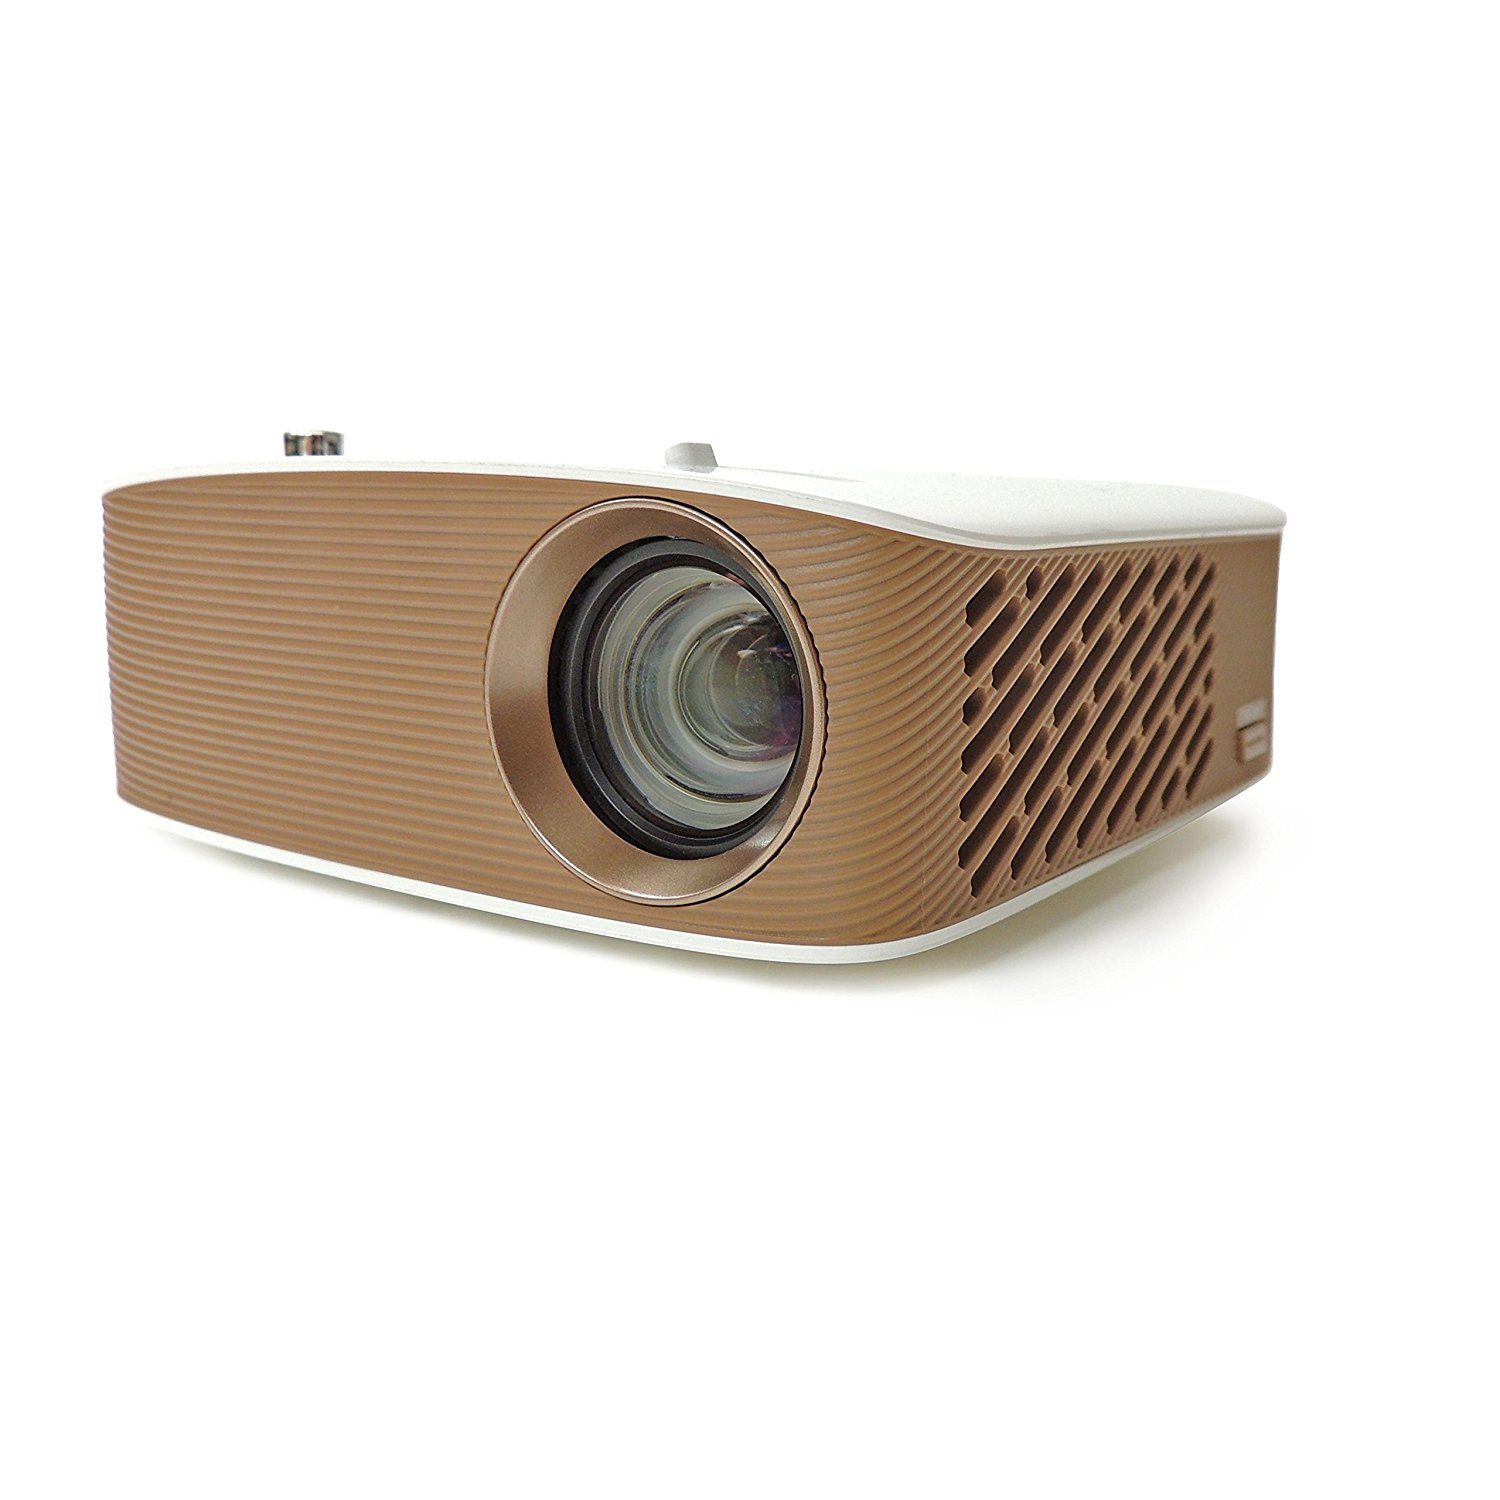 Flare150 Digital Art Projector by Artograph by Artograph